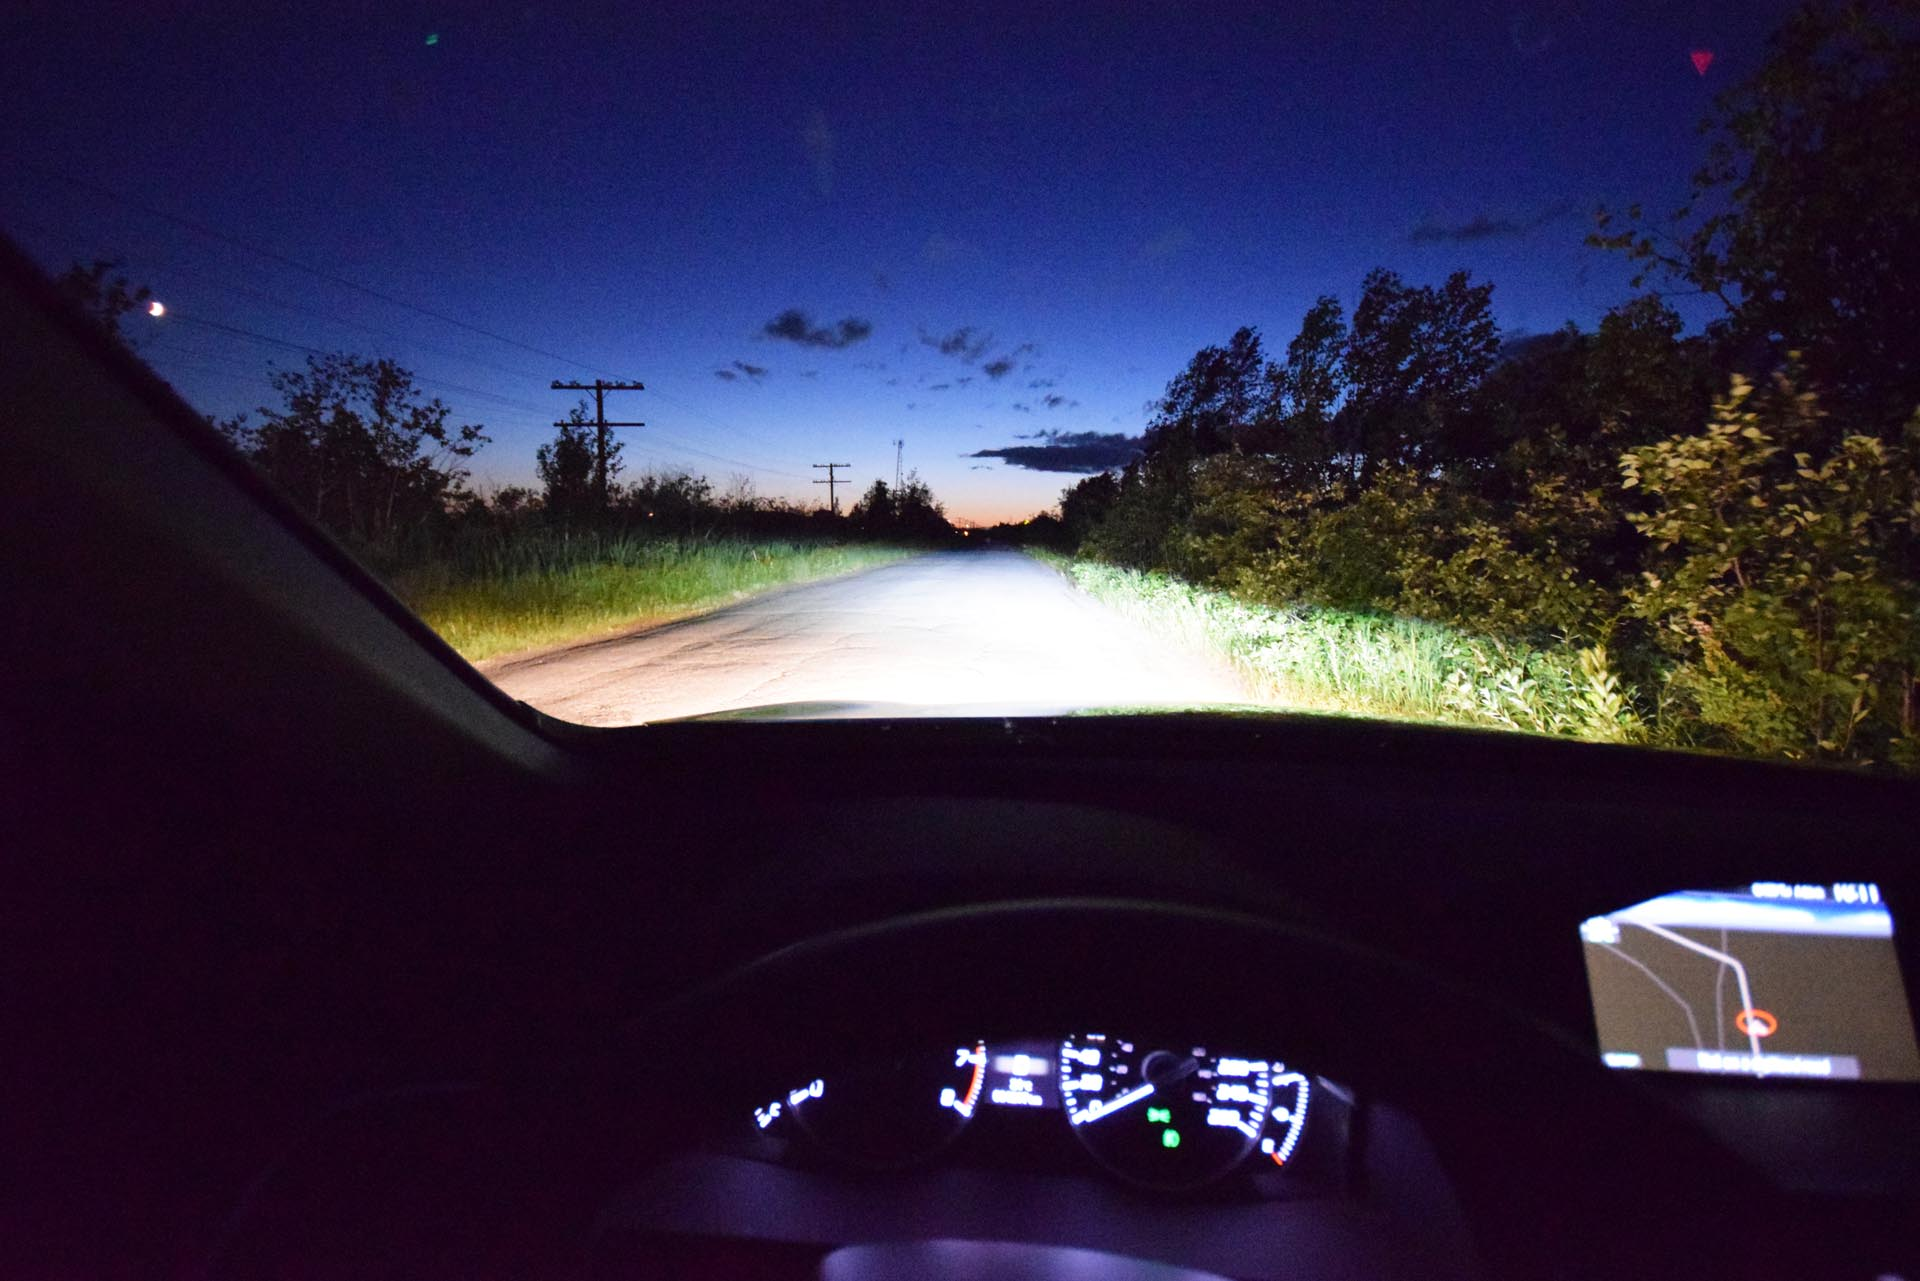 Here's a visualization of the lighting output from Acura's LED lighting system, in the new RDX. Note the thick saturation, brilliant cut-off line, minimal dark spots, and peripheral lighting which extends well off of the roadway.